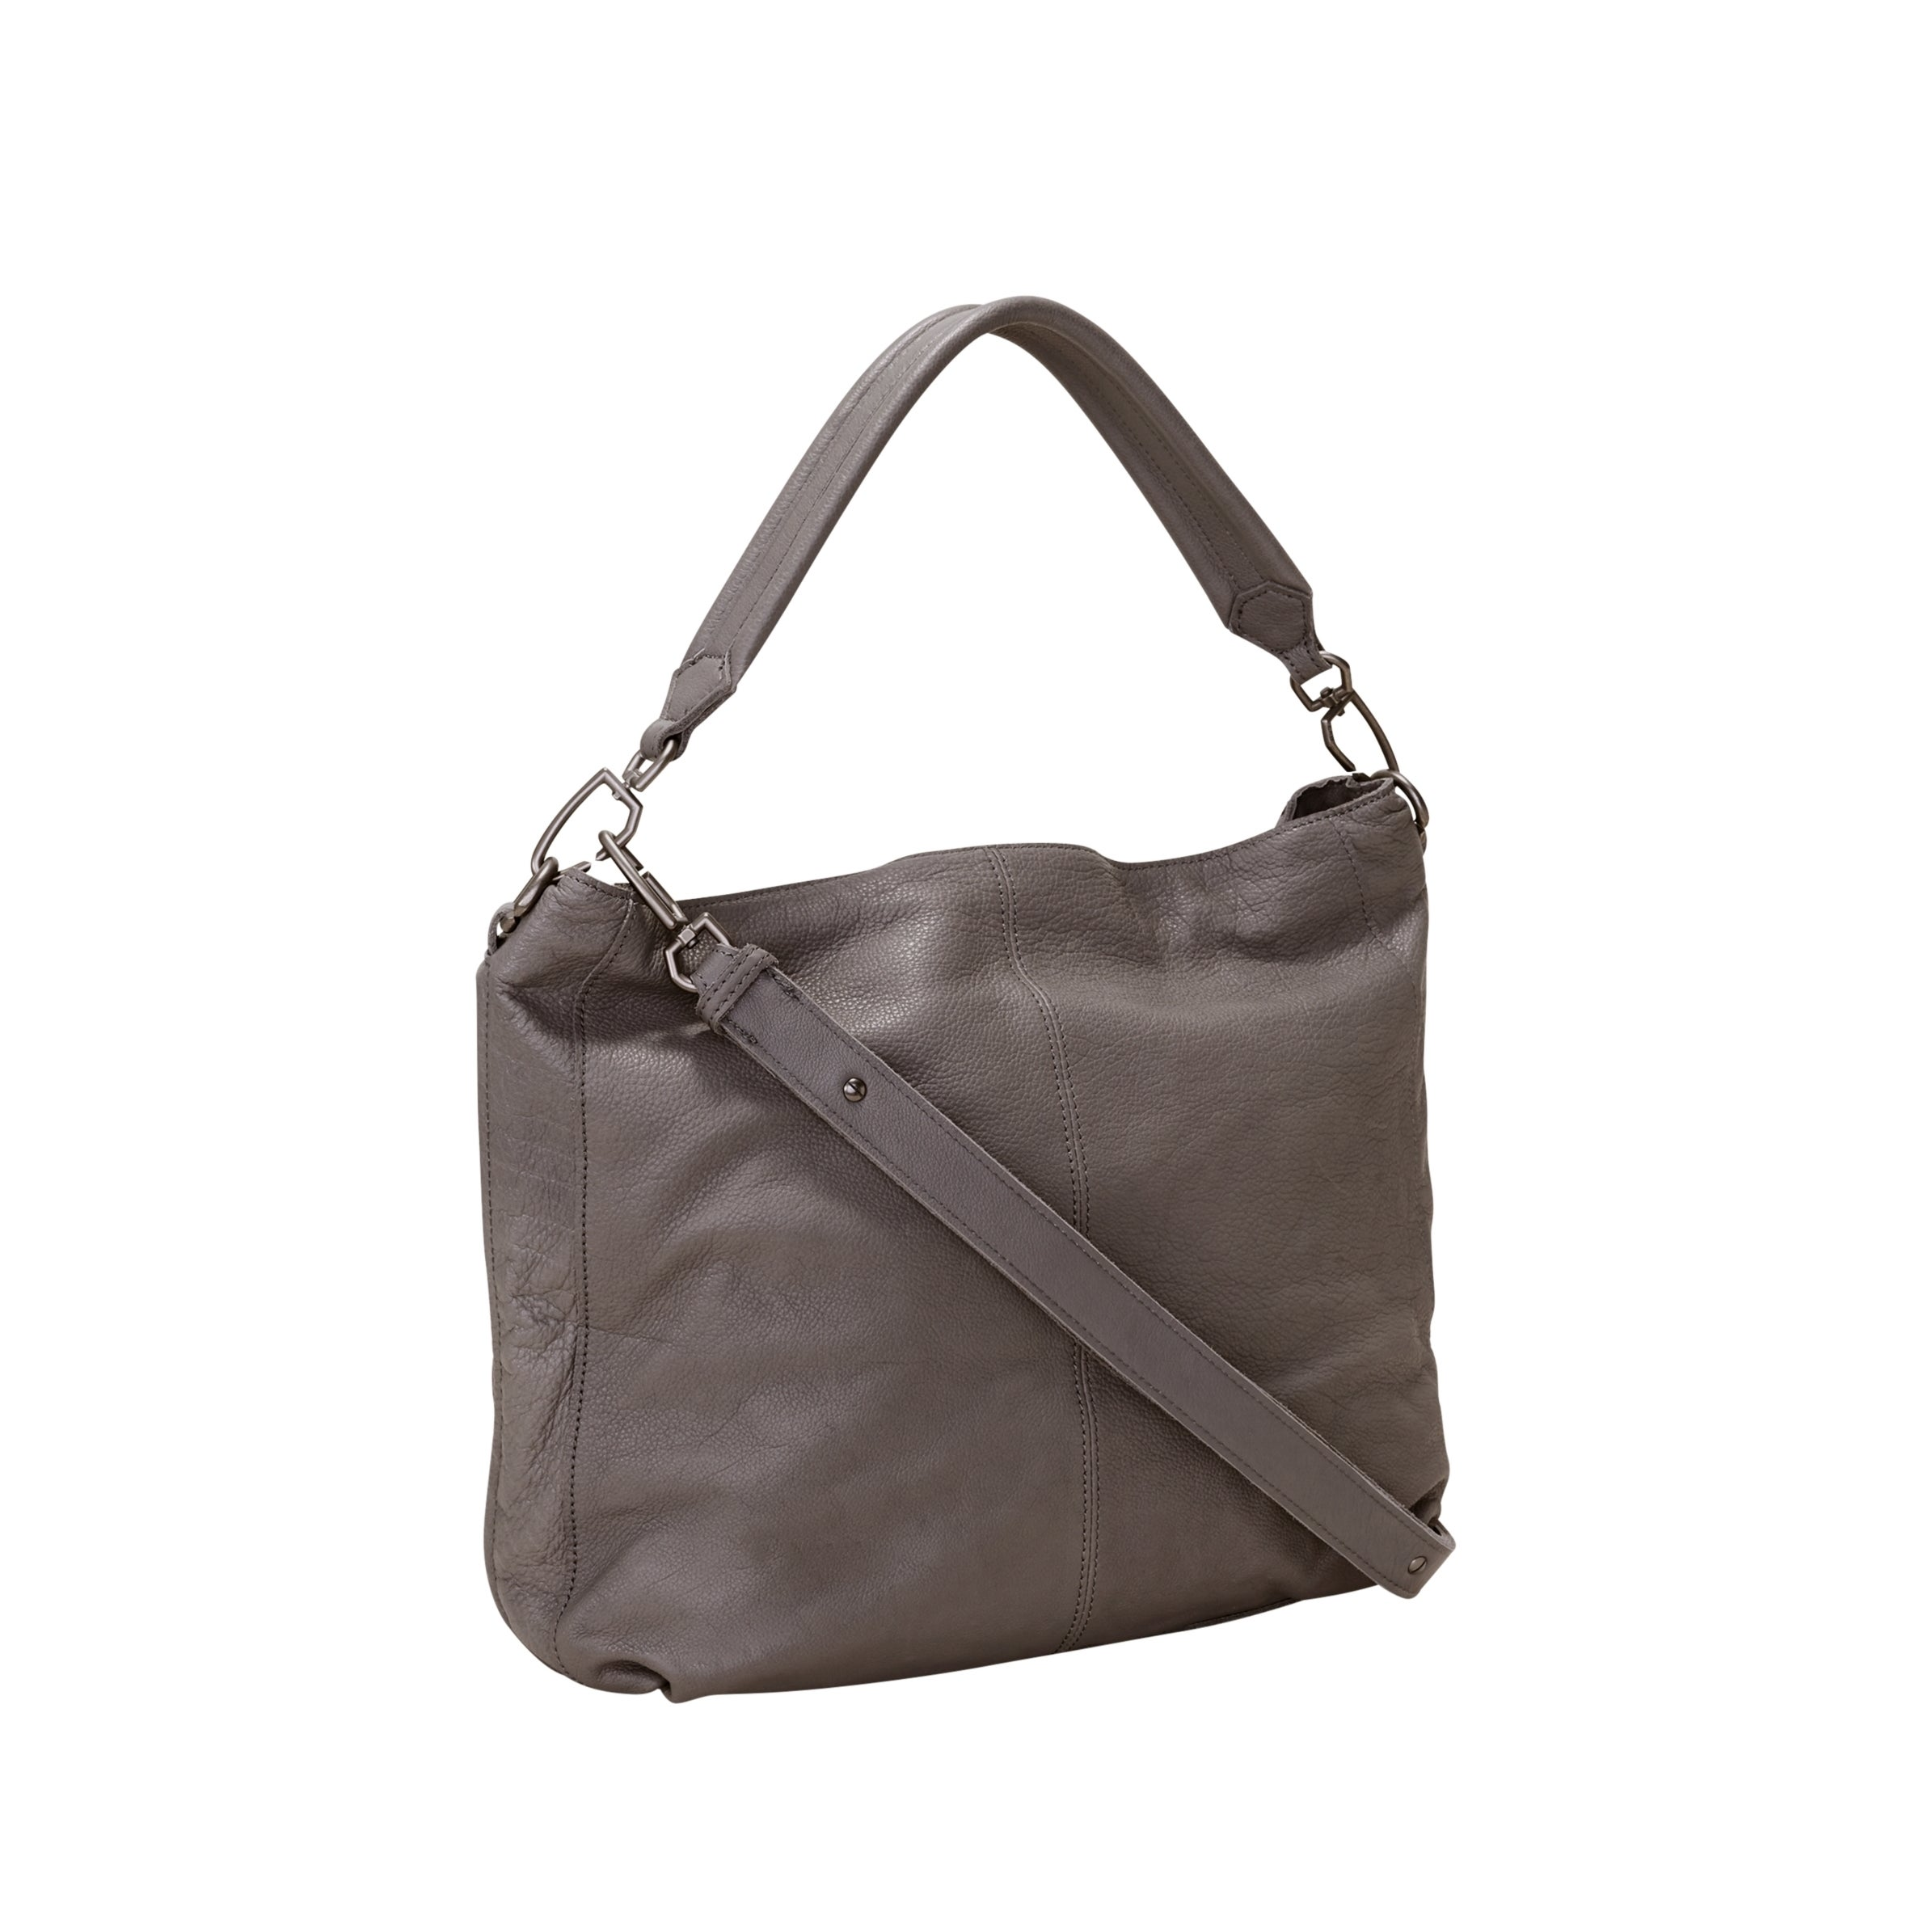 a9d16fddec02 Shop Liebeskind Berlin Miramar Sporty Leather Hobo Handbag - Free Shipping  Today - Overstock - 18114295